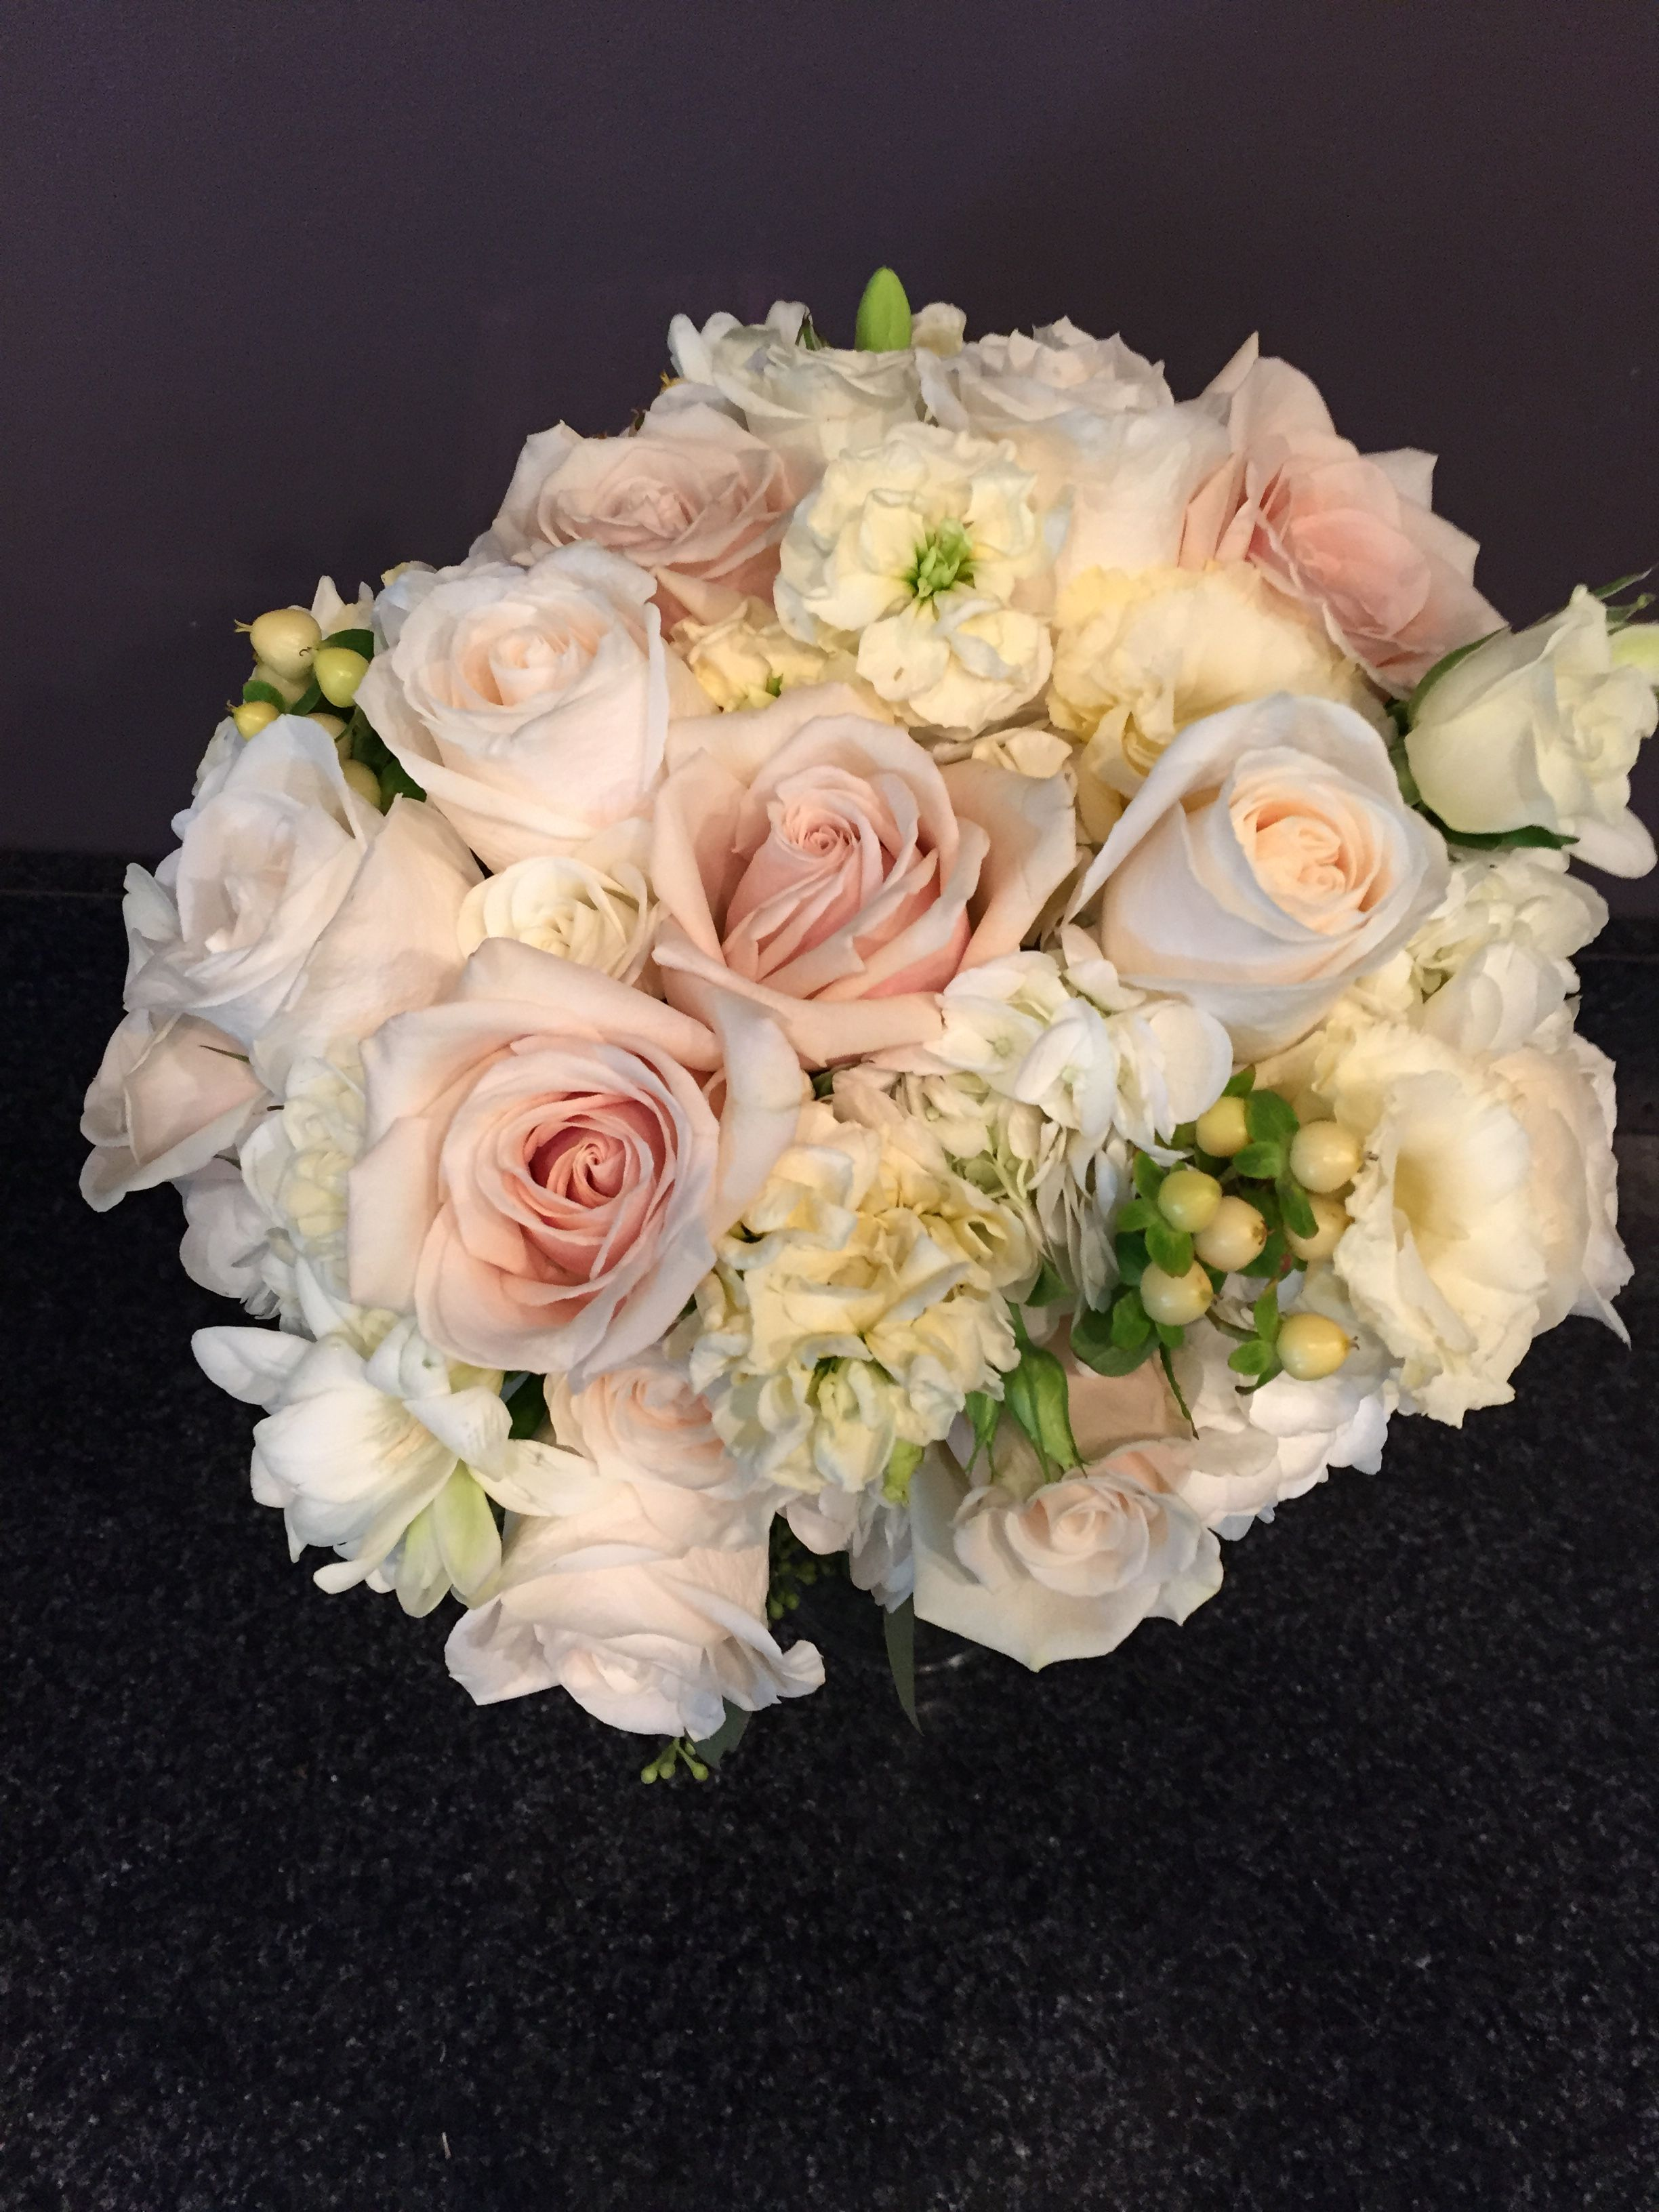 Romantic Traditional Bridal Bouquet Of Roses Hydrangea And Stock Bridalbouquet Hydrangea Rose Fresh Flowers Arrangements Flowers Delivered Flower Delivery